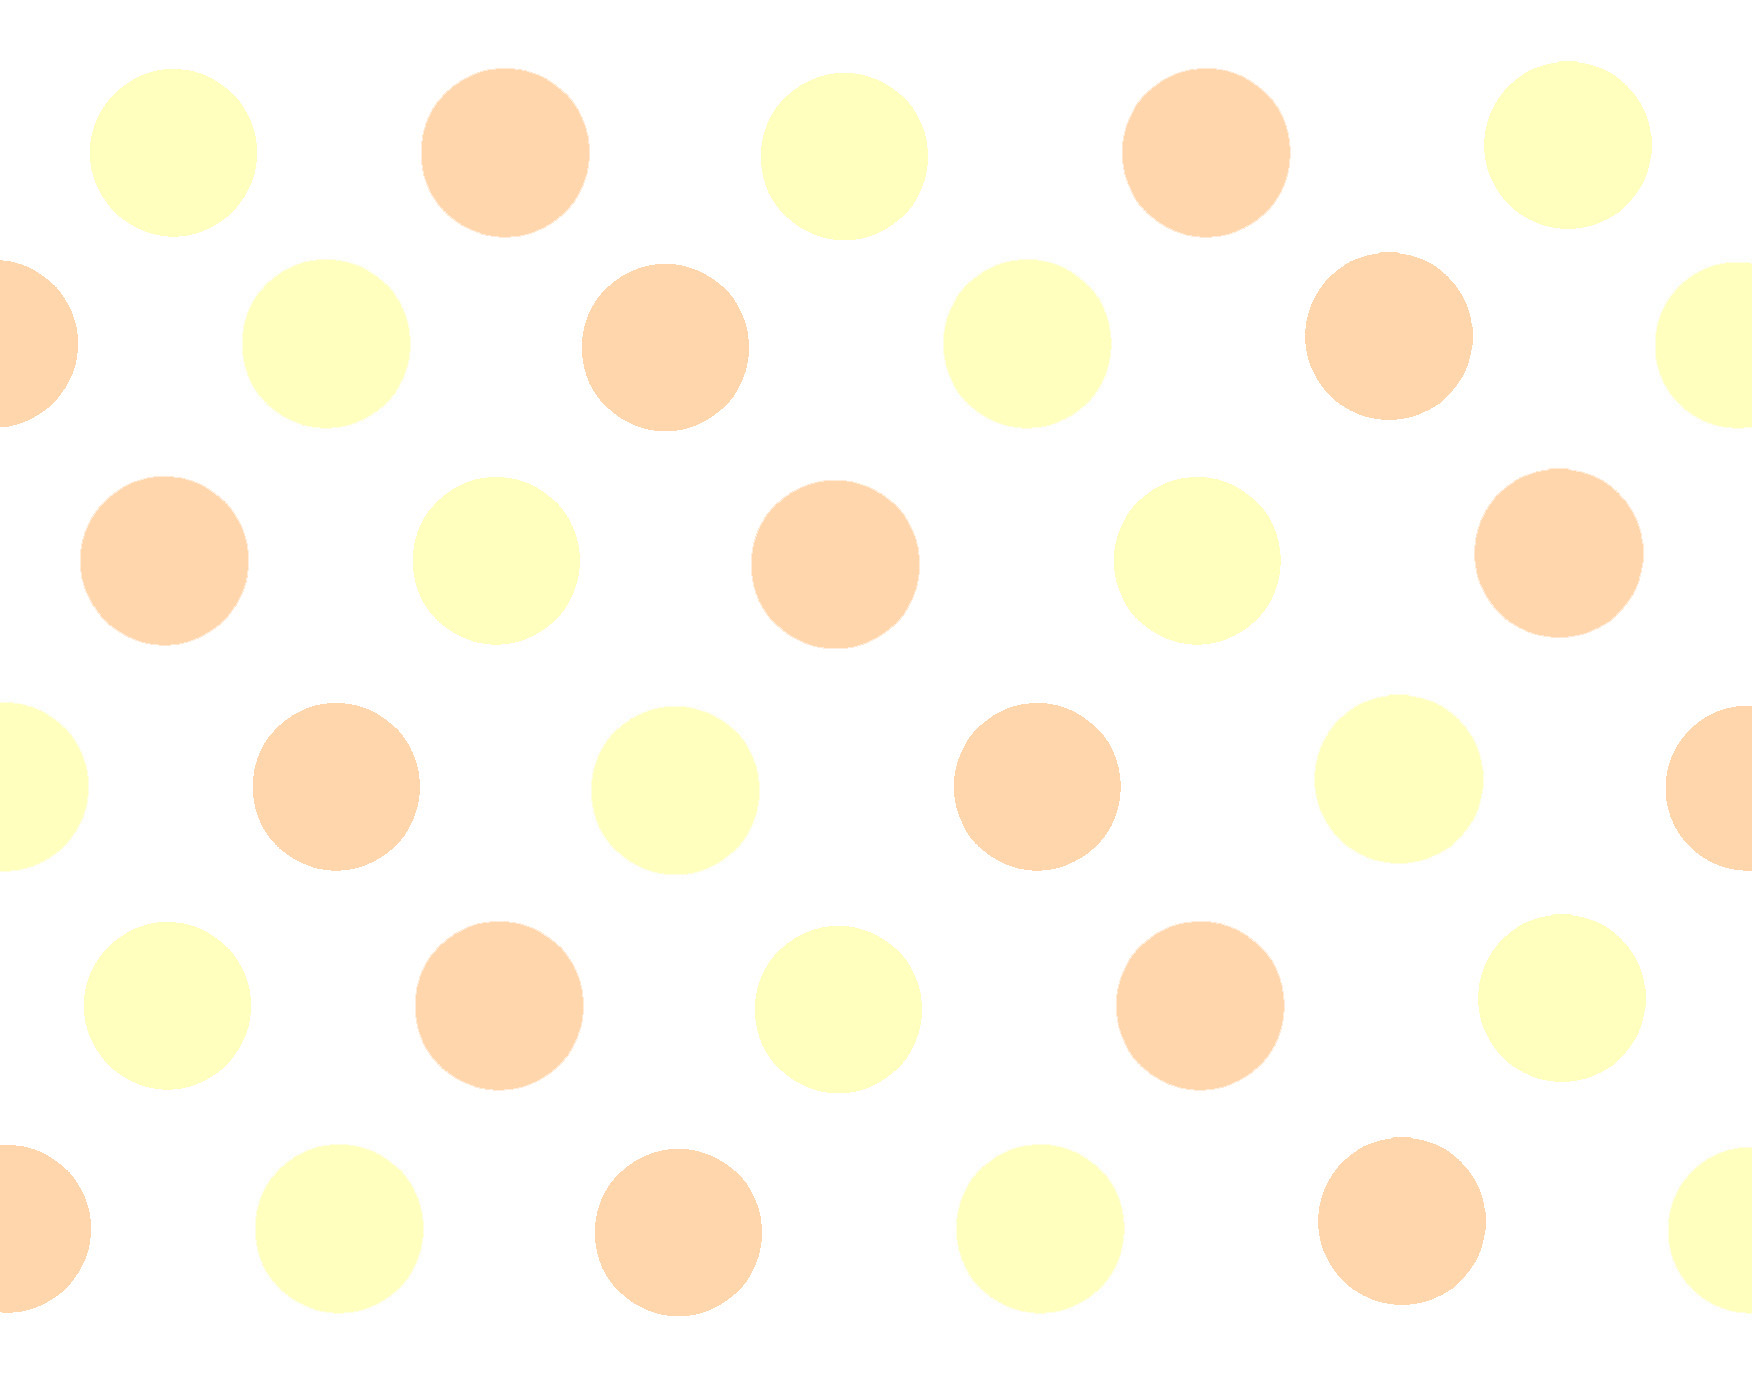 watercolor yellow polka dot background pattern with yellow polka